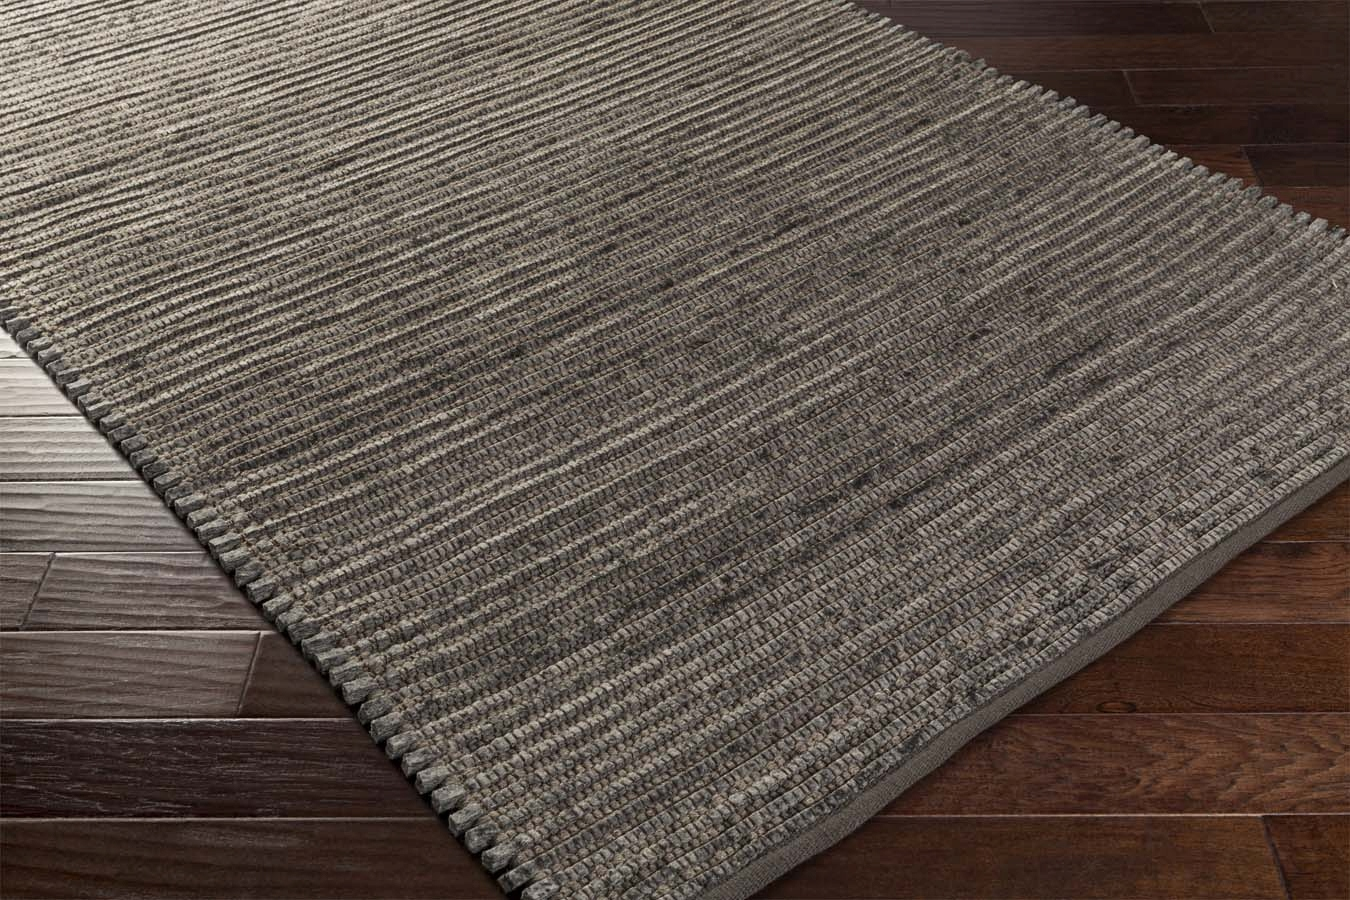 Solid Colored Area Rugs | Solid Color Rugs | Area Rugs for ... - photo#20